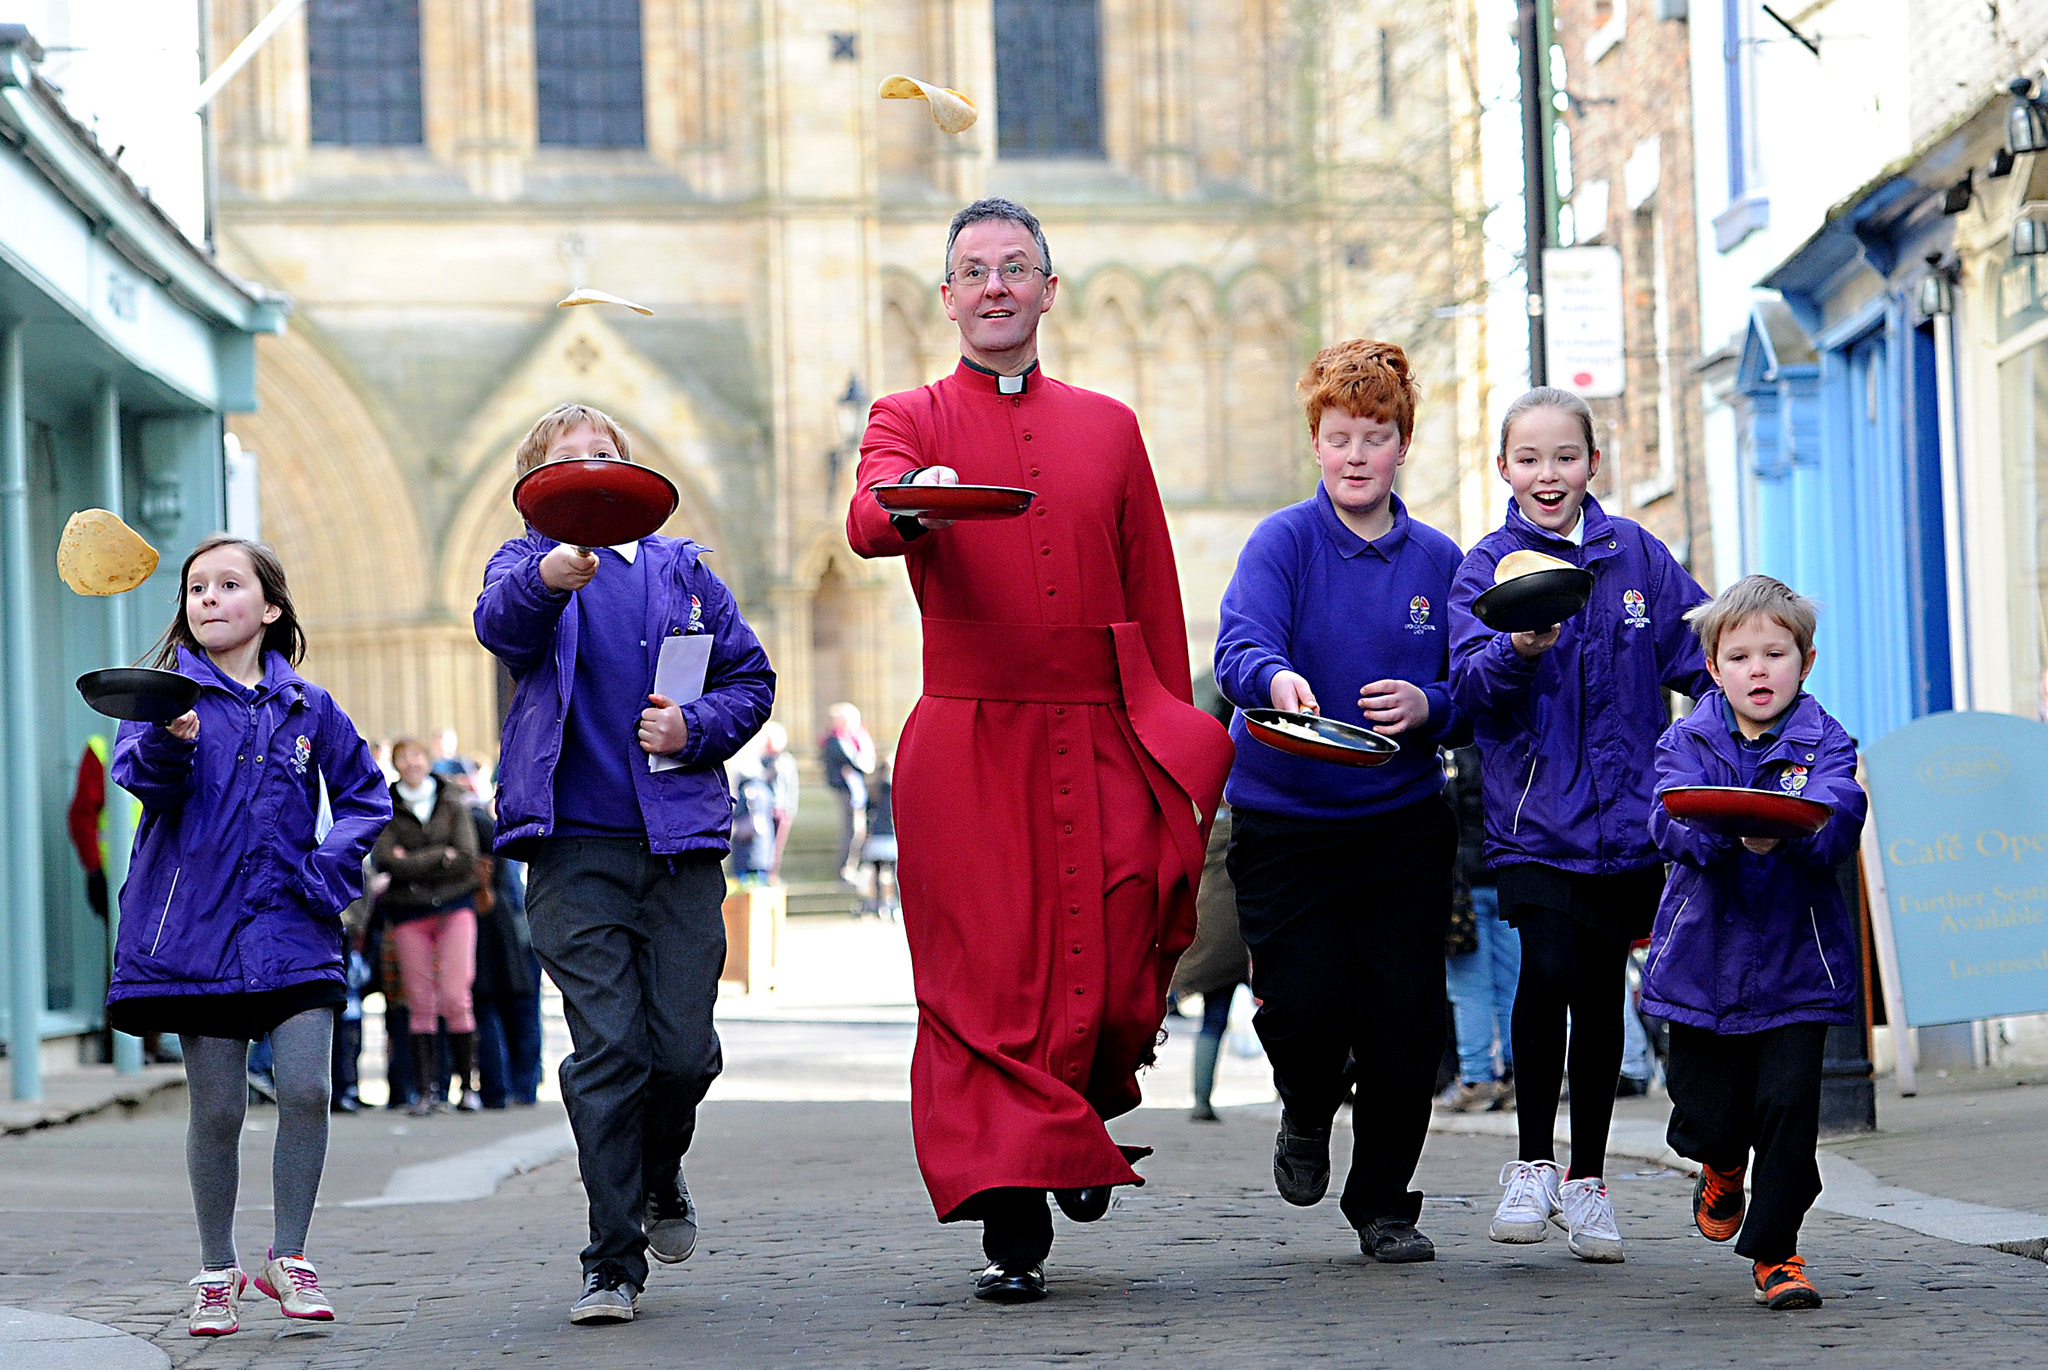 he Dean of Ripon Cathedral John Dobson takes part in the annual Pancake Races with children from Ripon Cathedral School outside Ripon Cathedral, North Yorkshire. PRESS ASSOCIATION Photo. Issue date: Tuesday February 17, 2015. Photo credit should read: Anna Gowthorpe/PA Wire